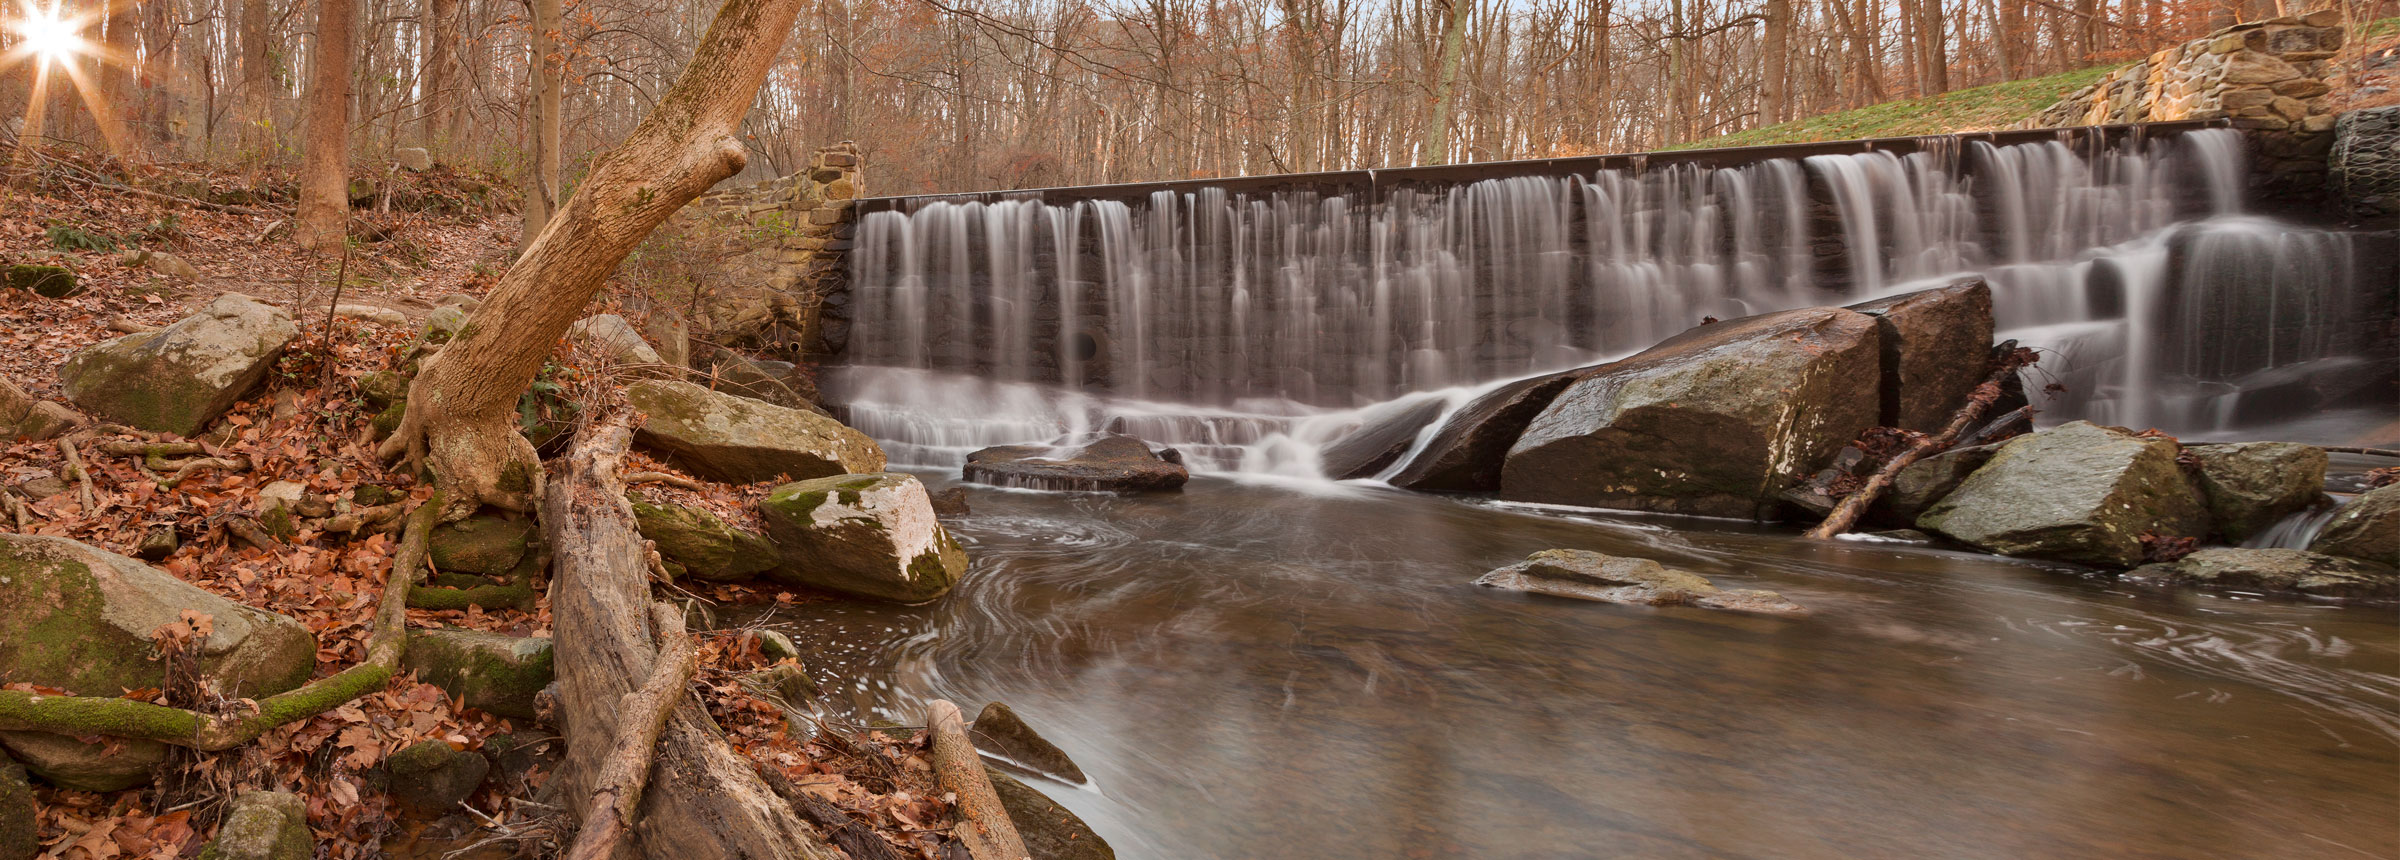 Chesapeake Bay waterfall